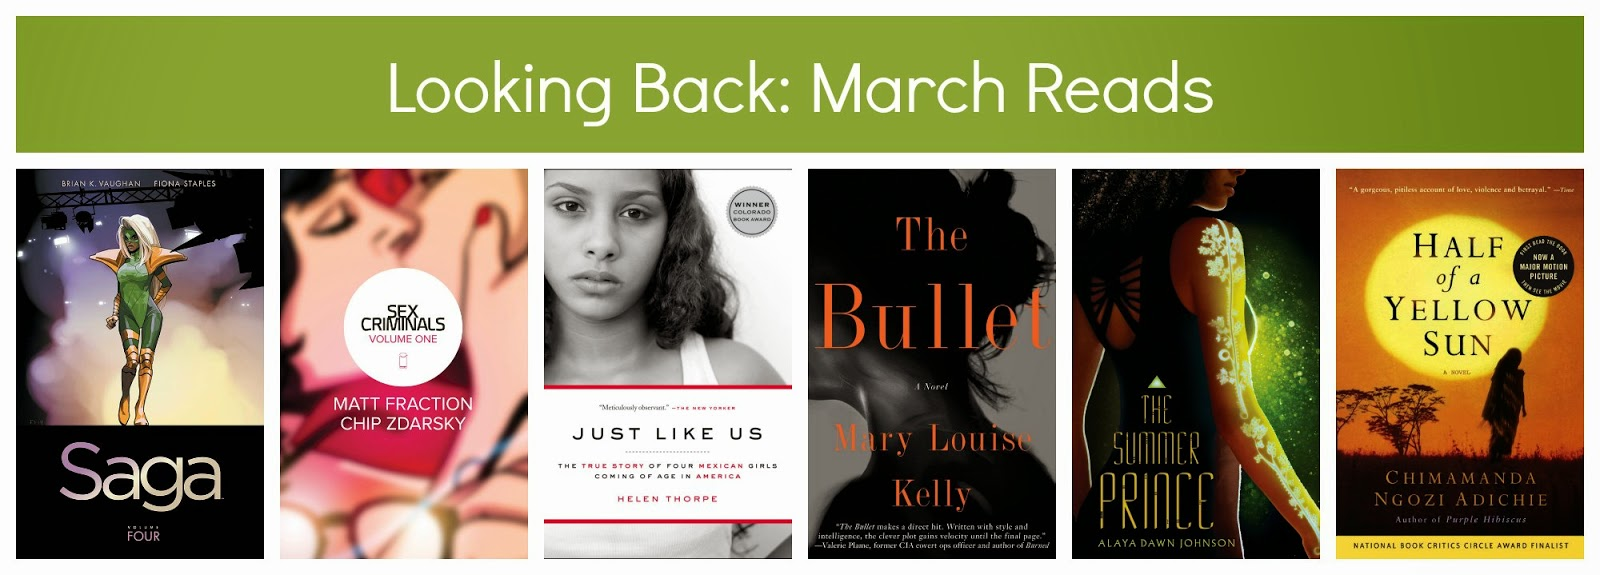 best books I read in March 2015: Saga, Vol 4; Sex Criminals, Vol 1; Just like us, by Helen Thorpe; The Bullet, by Mary Louise Kelly; Half of a Yellow Sun, by Chimimanda Ngozi Adichie; The Summer Prince, by Alaya Dawn Johnson